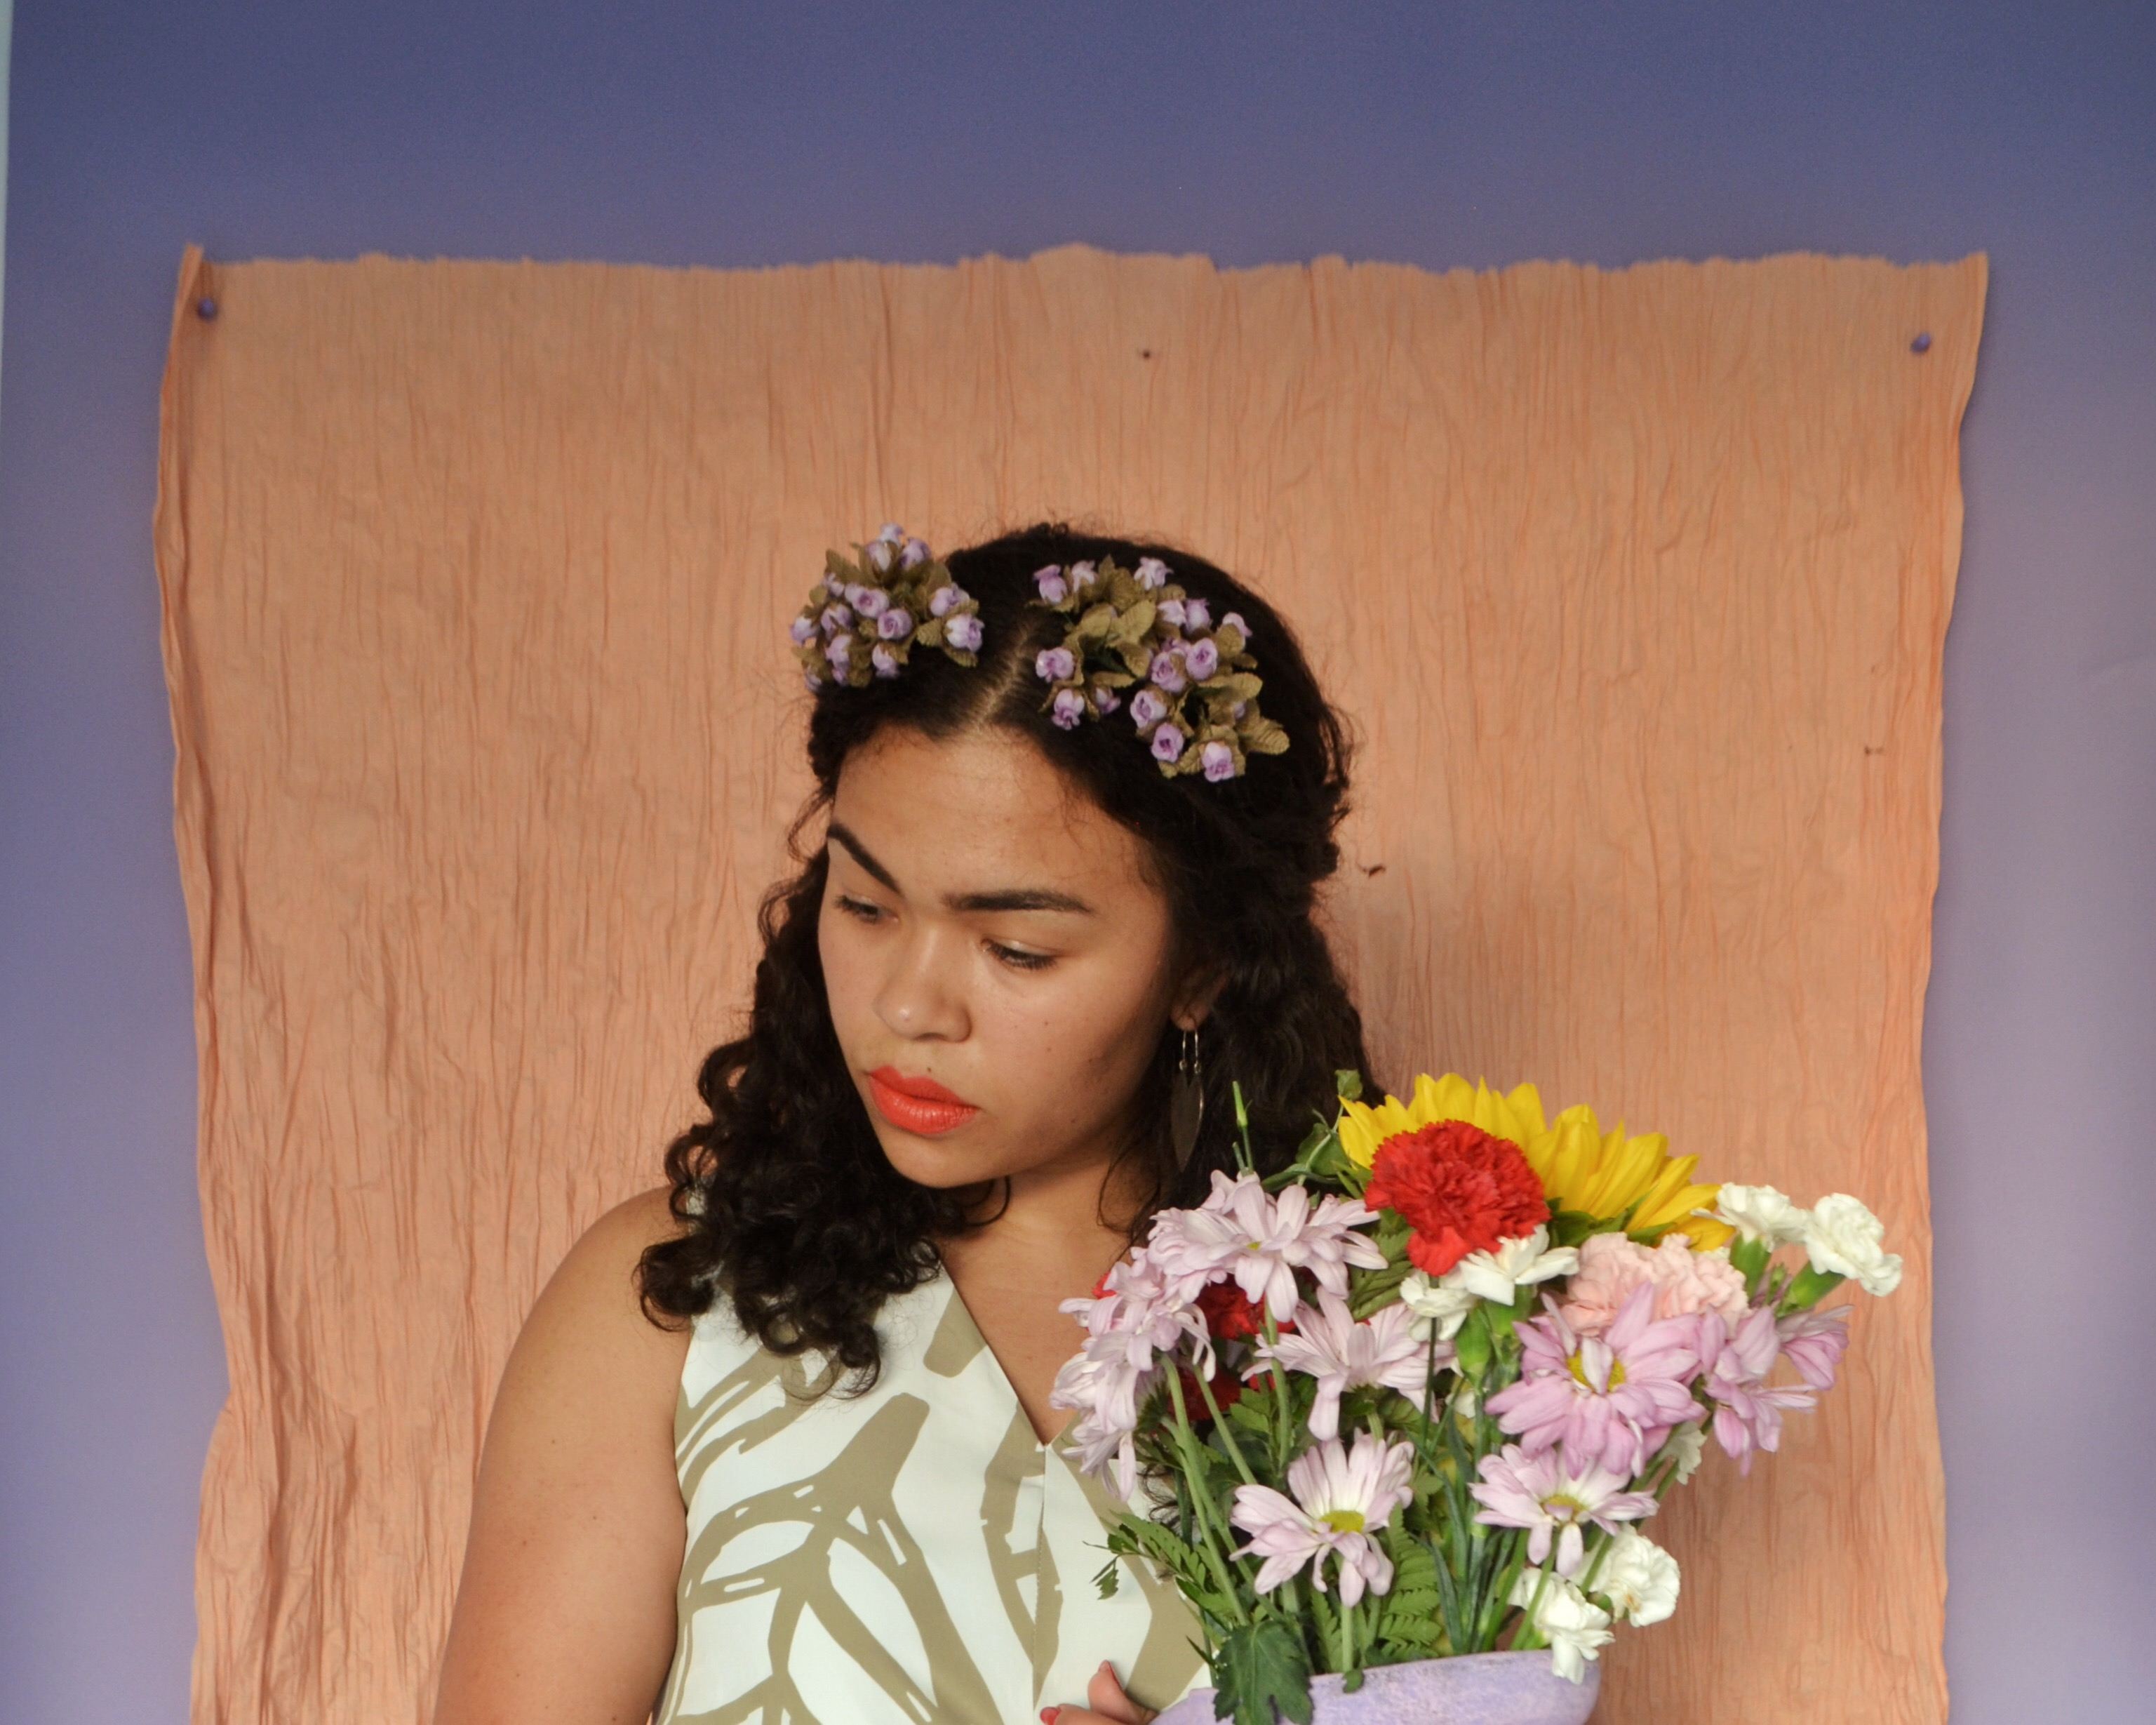 Frida: Digging Deeper - A Portrait Series by Lala Lopez